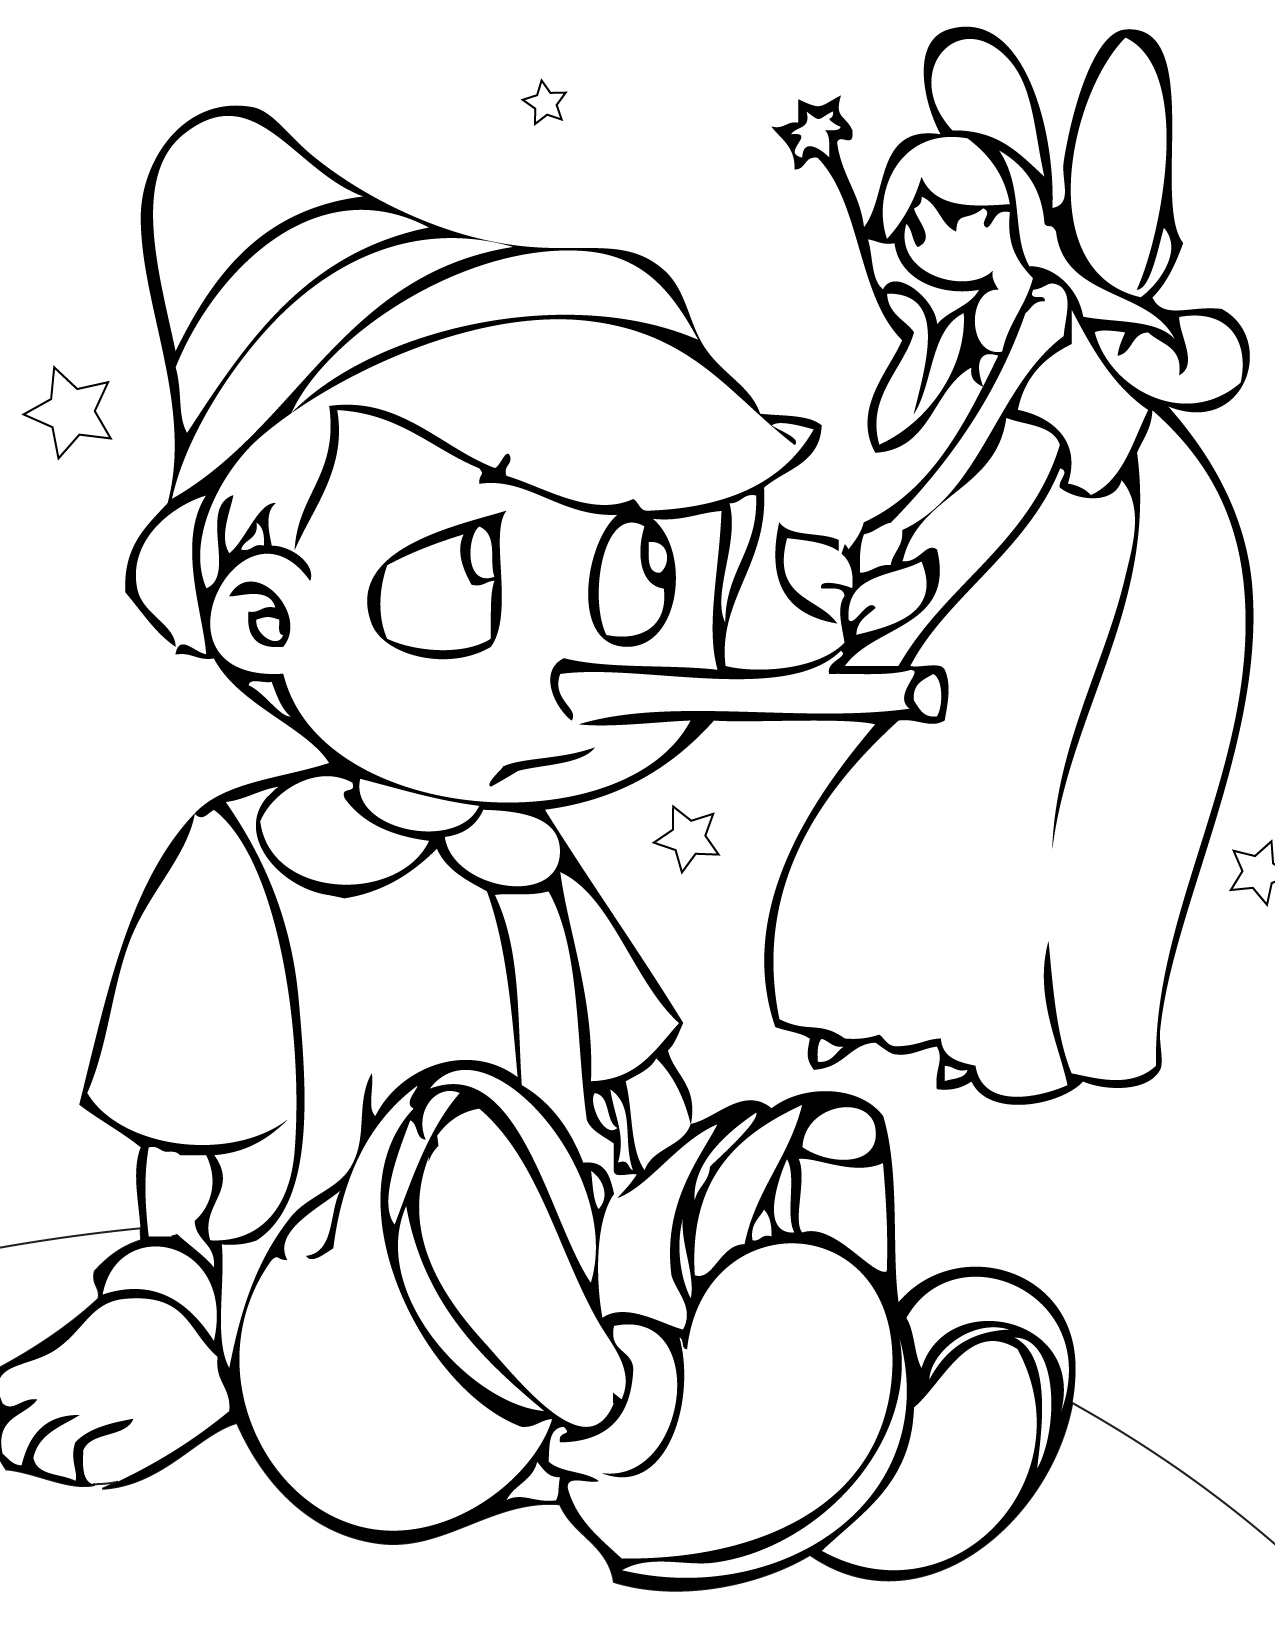 Free Printable Pinocchio Coloring Pages For Kids Free Coloring Page Printables